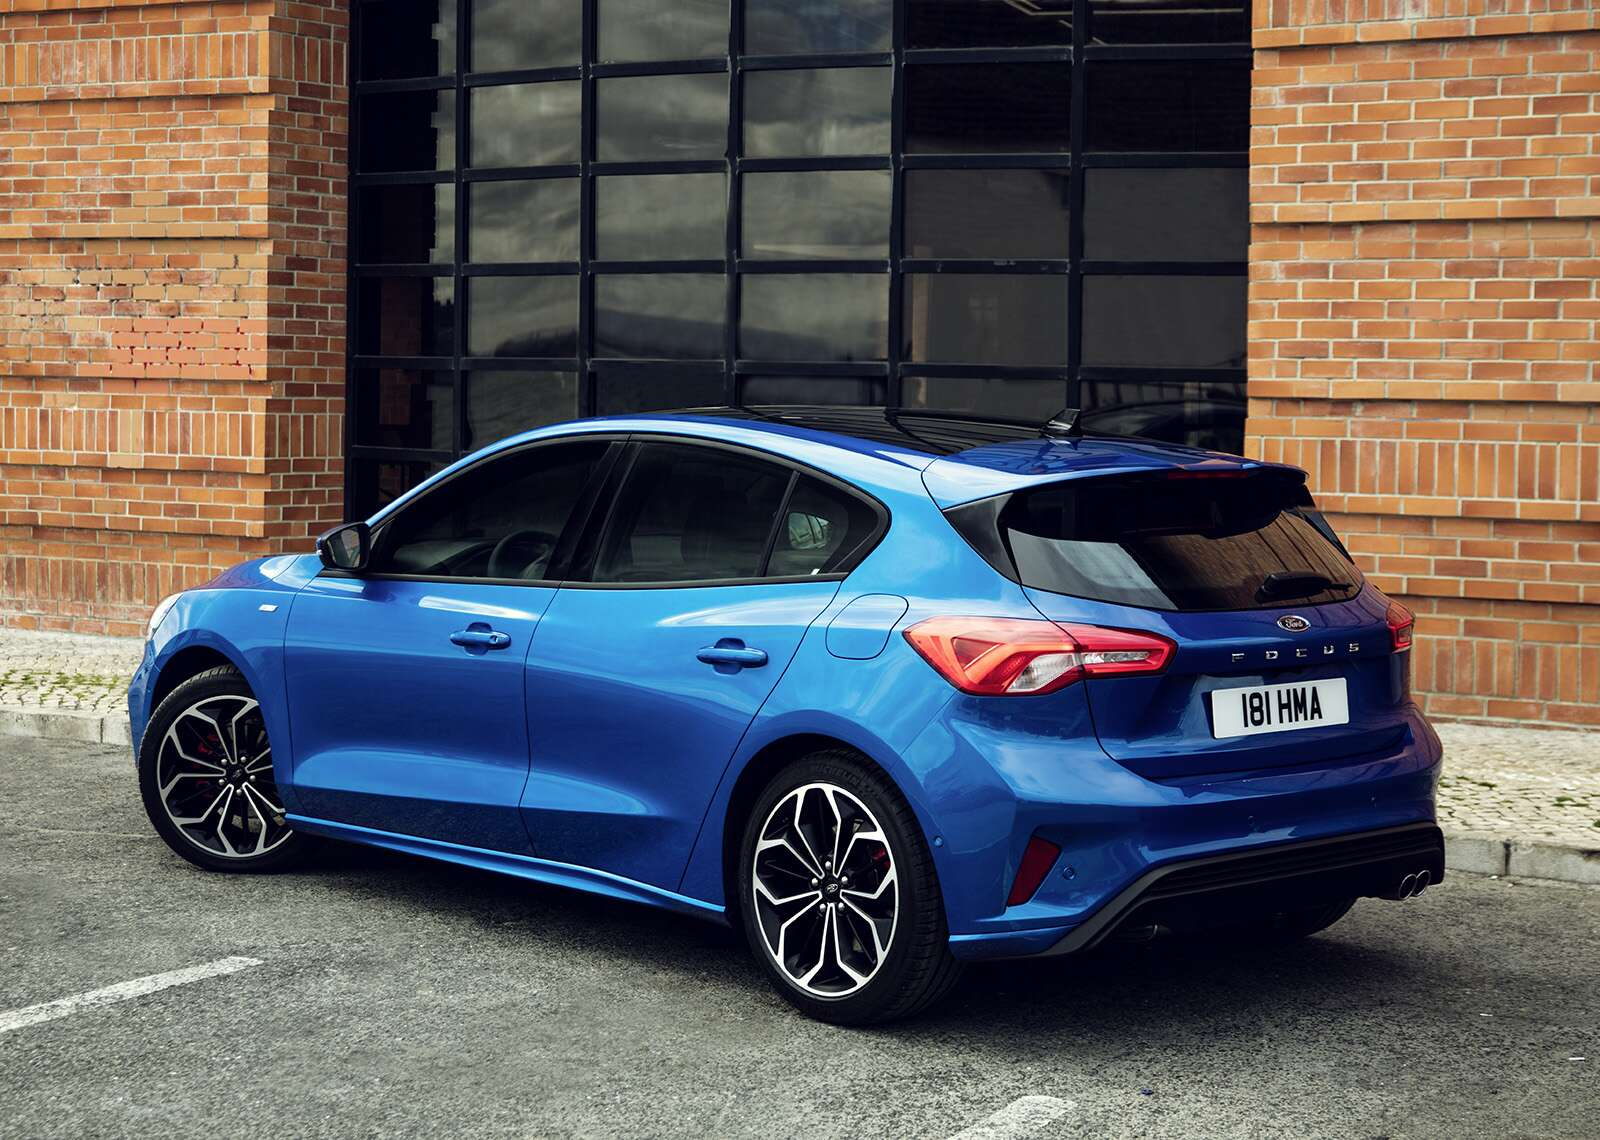 release line focus st week specs the to prices uk you and date everything need know ford